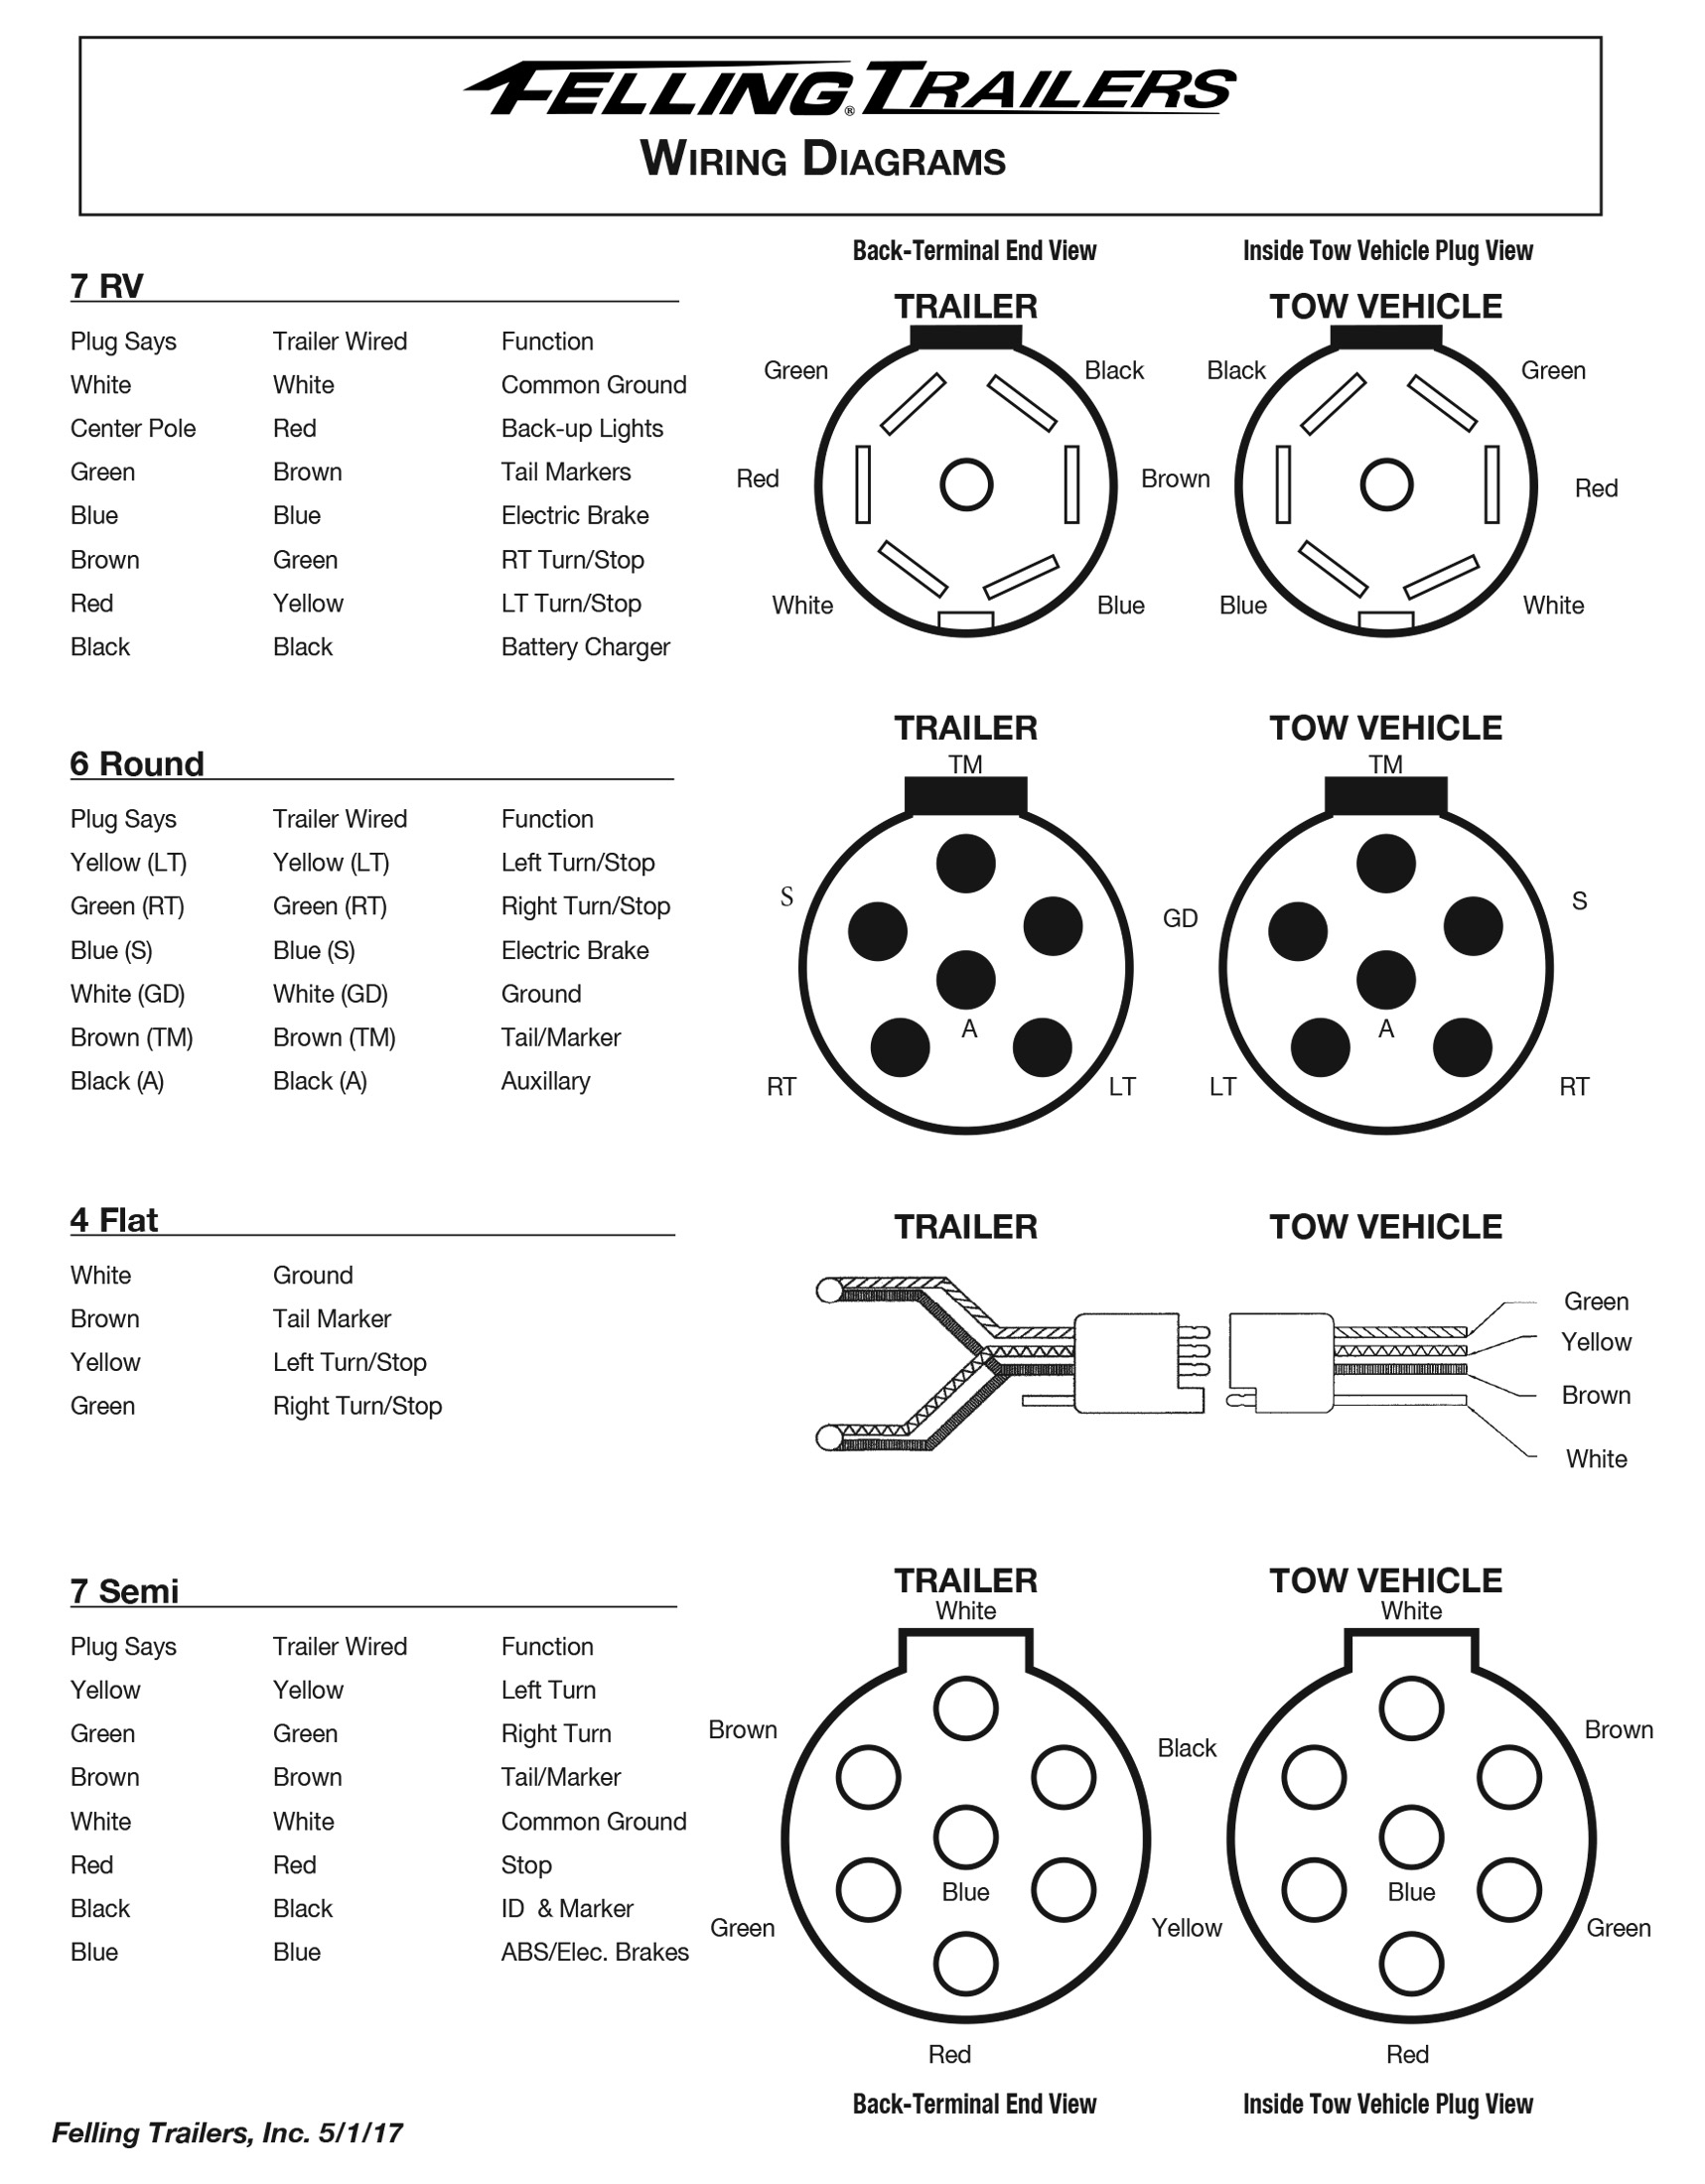 Service- Felling Trailers Wiring Diagrams, Wheel Toque - 7 Connector Trailer Wiring Diagram